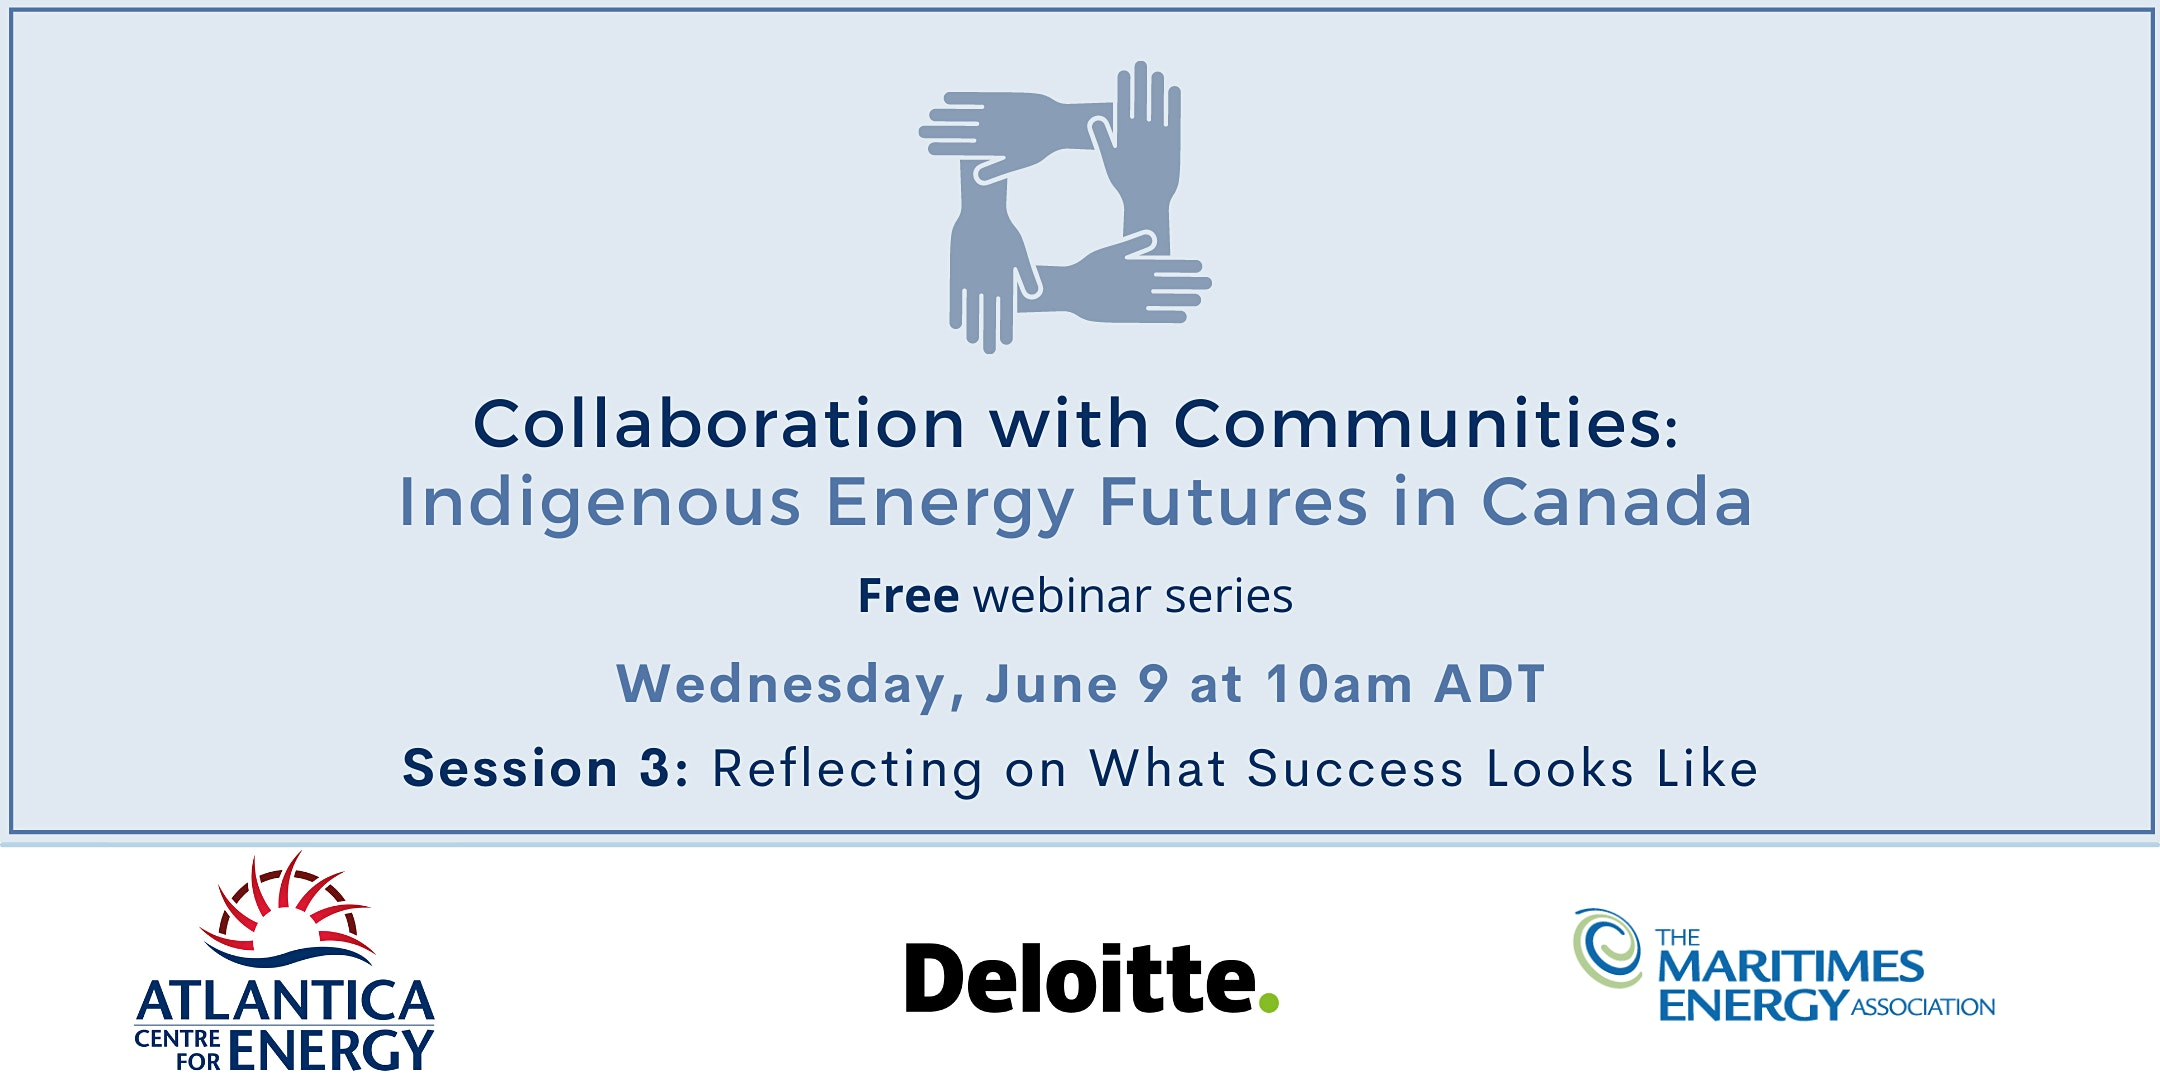 Collaboration with Communities: Indigenous Energy Futures in Canada